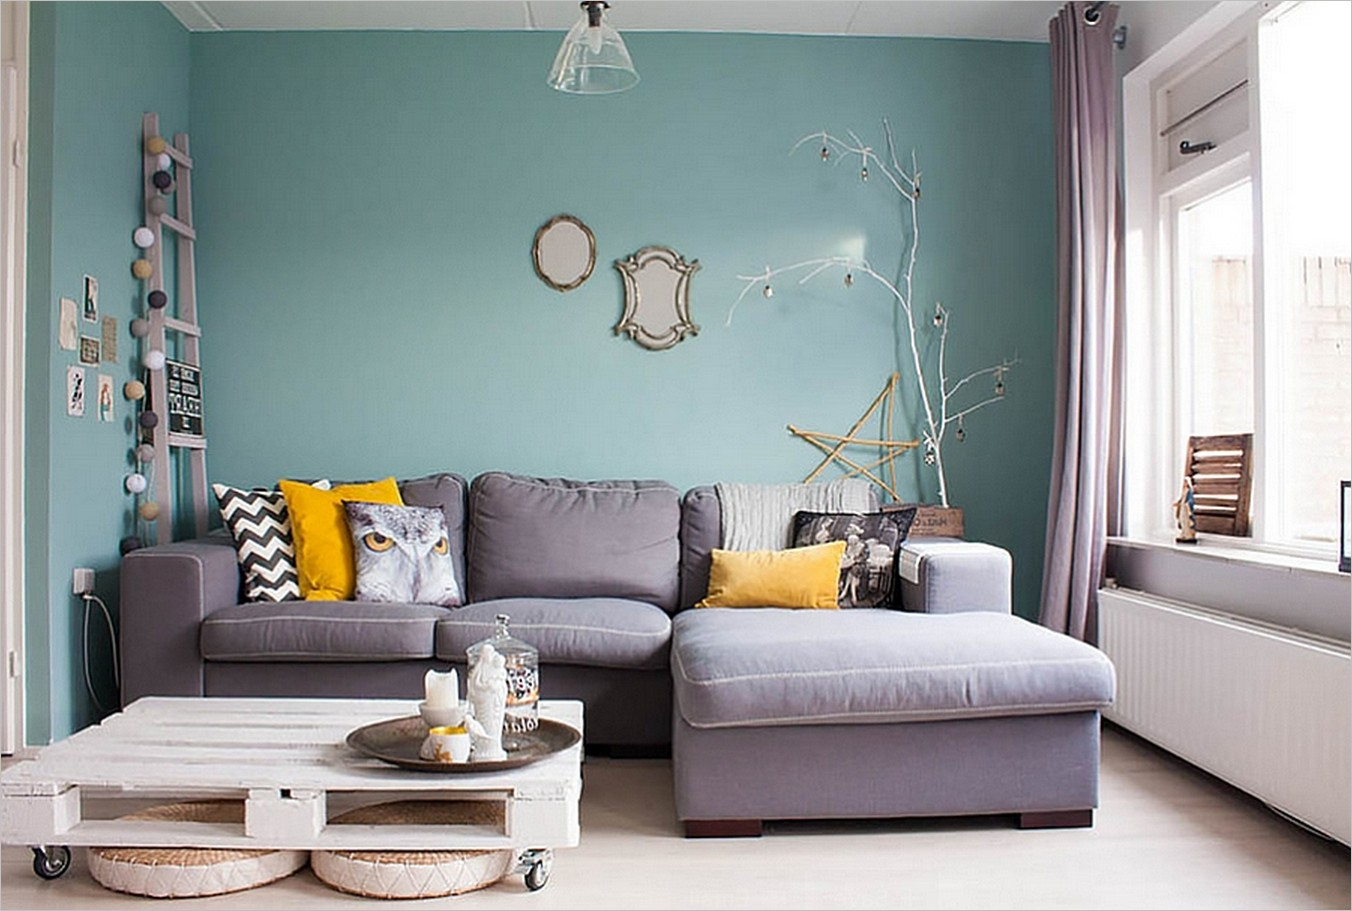 2017 Color Trends For Your Home Interior, According To